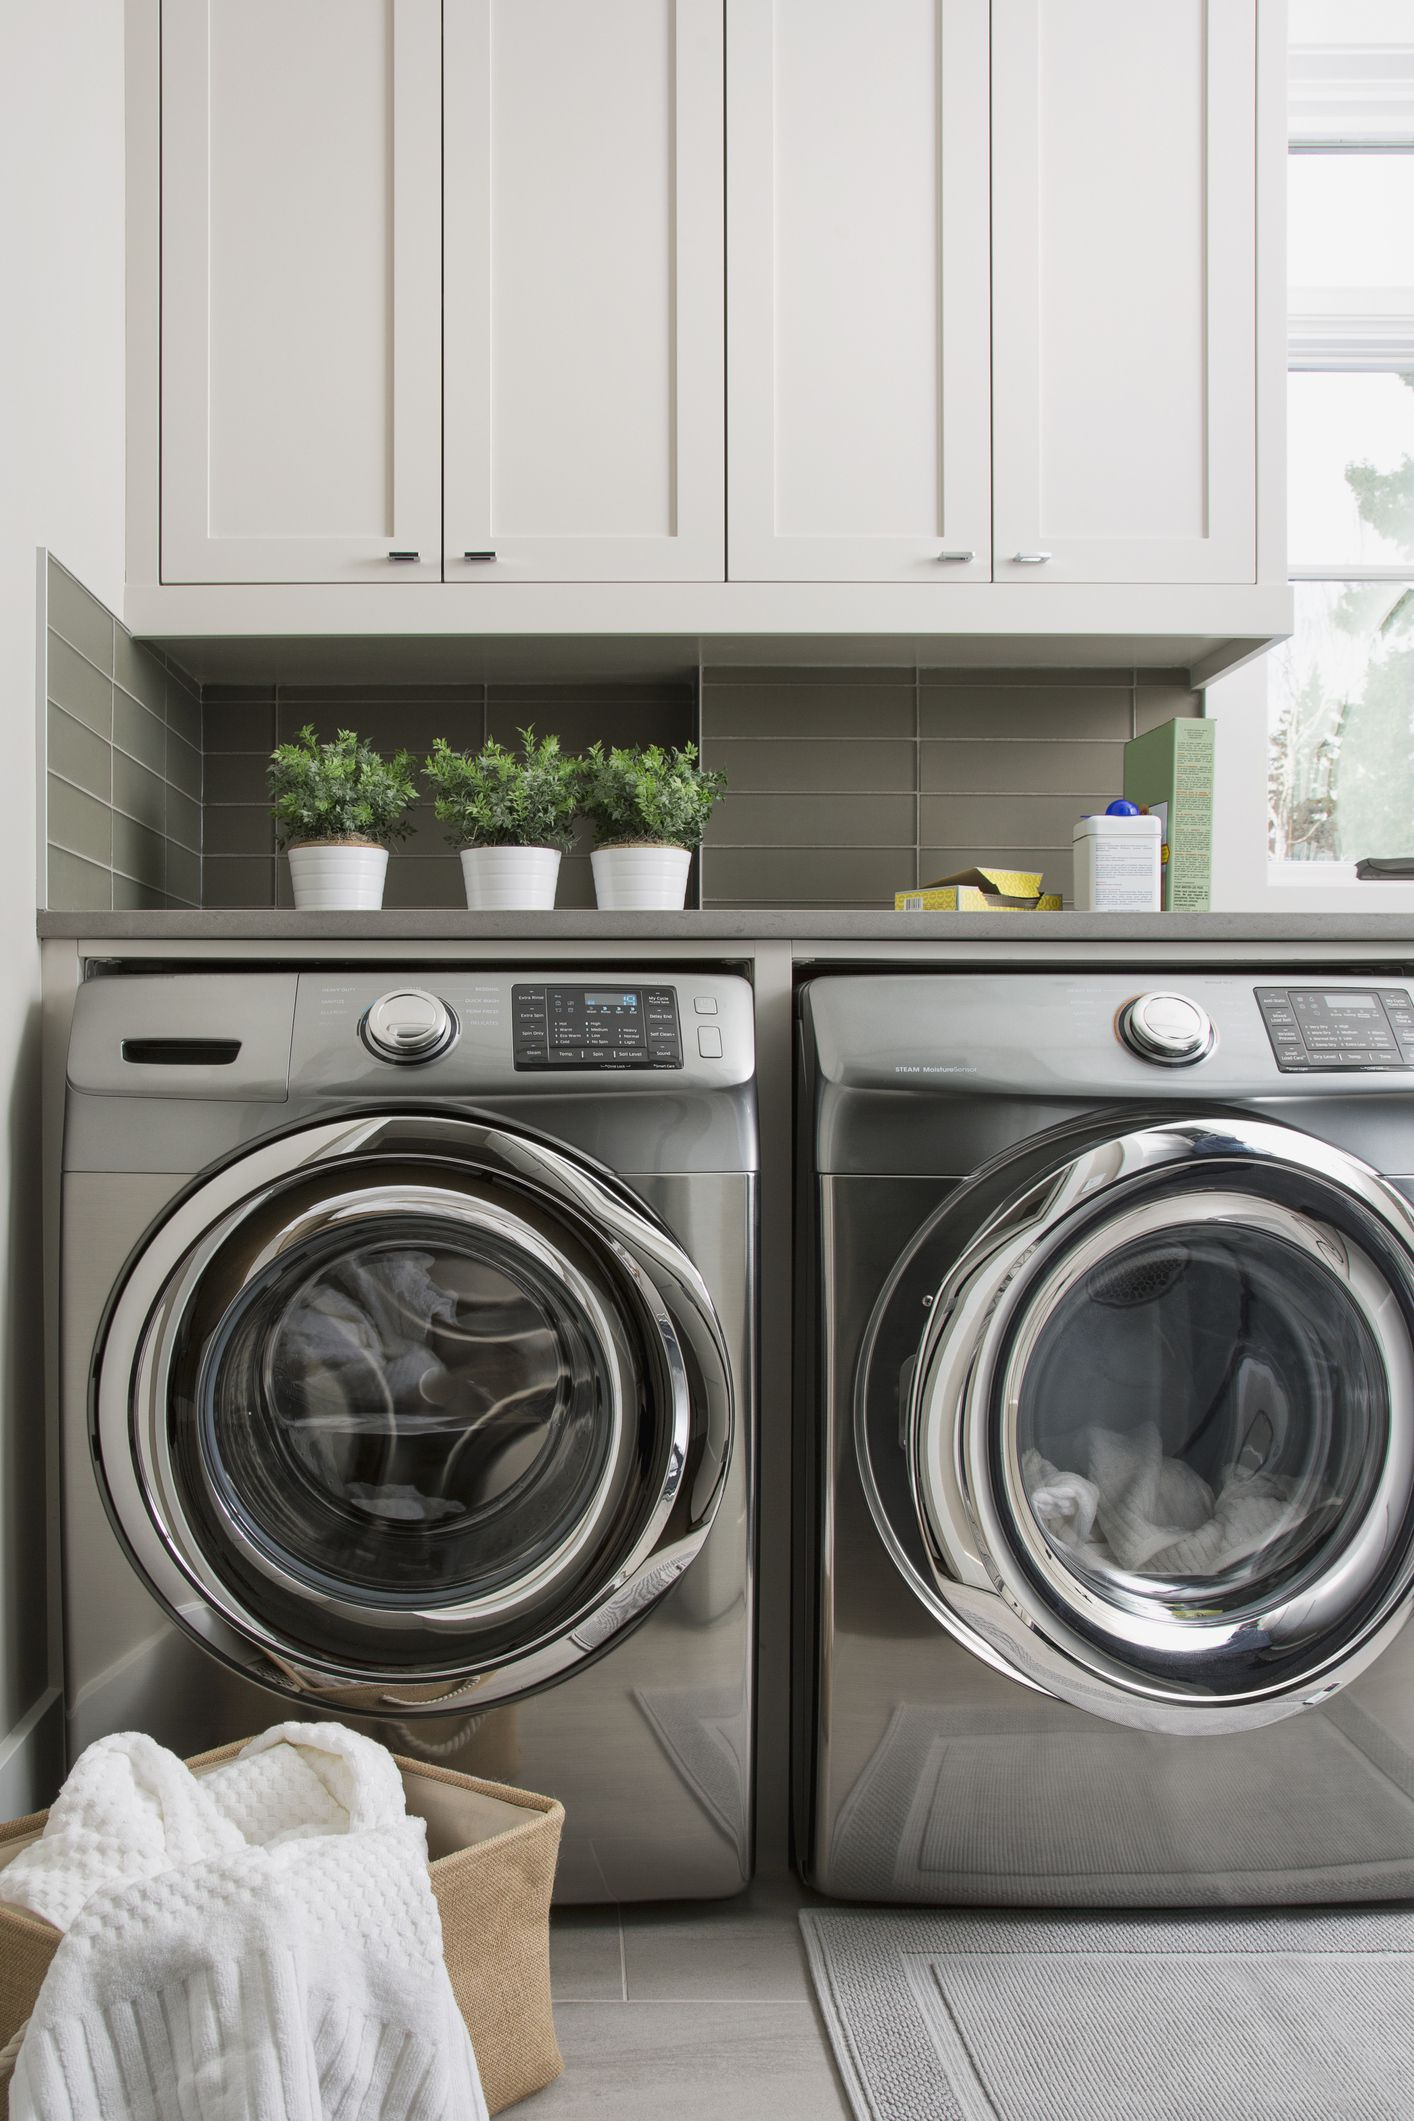 Finally, Answers To 12 Most Asked Laundry Questions - The Dirty Dozen